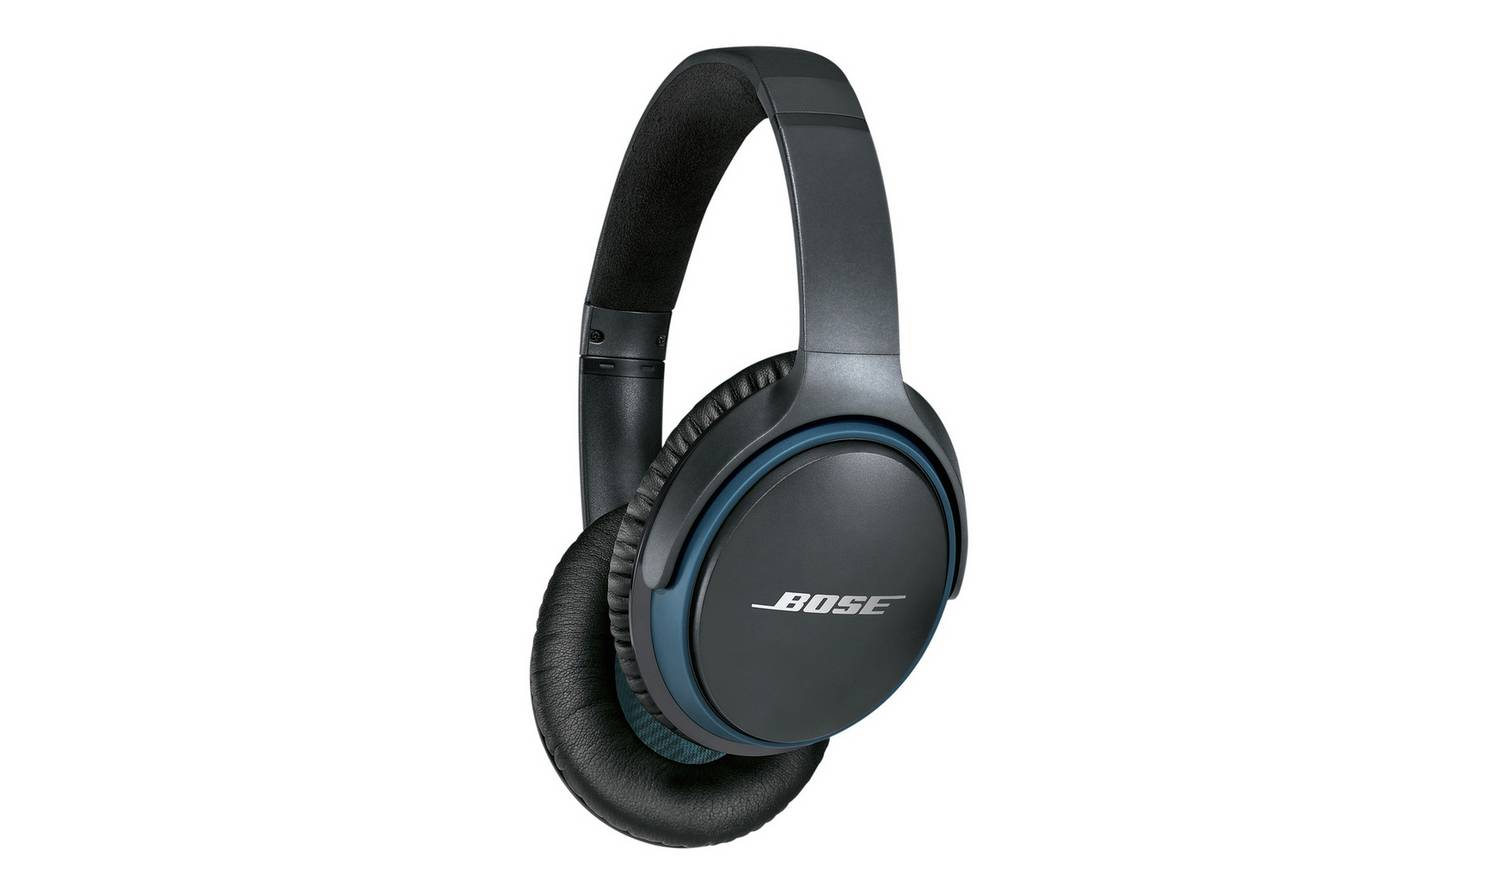 Bose SoundLink Around Ear Headphones - Black